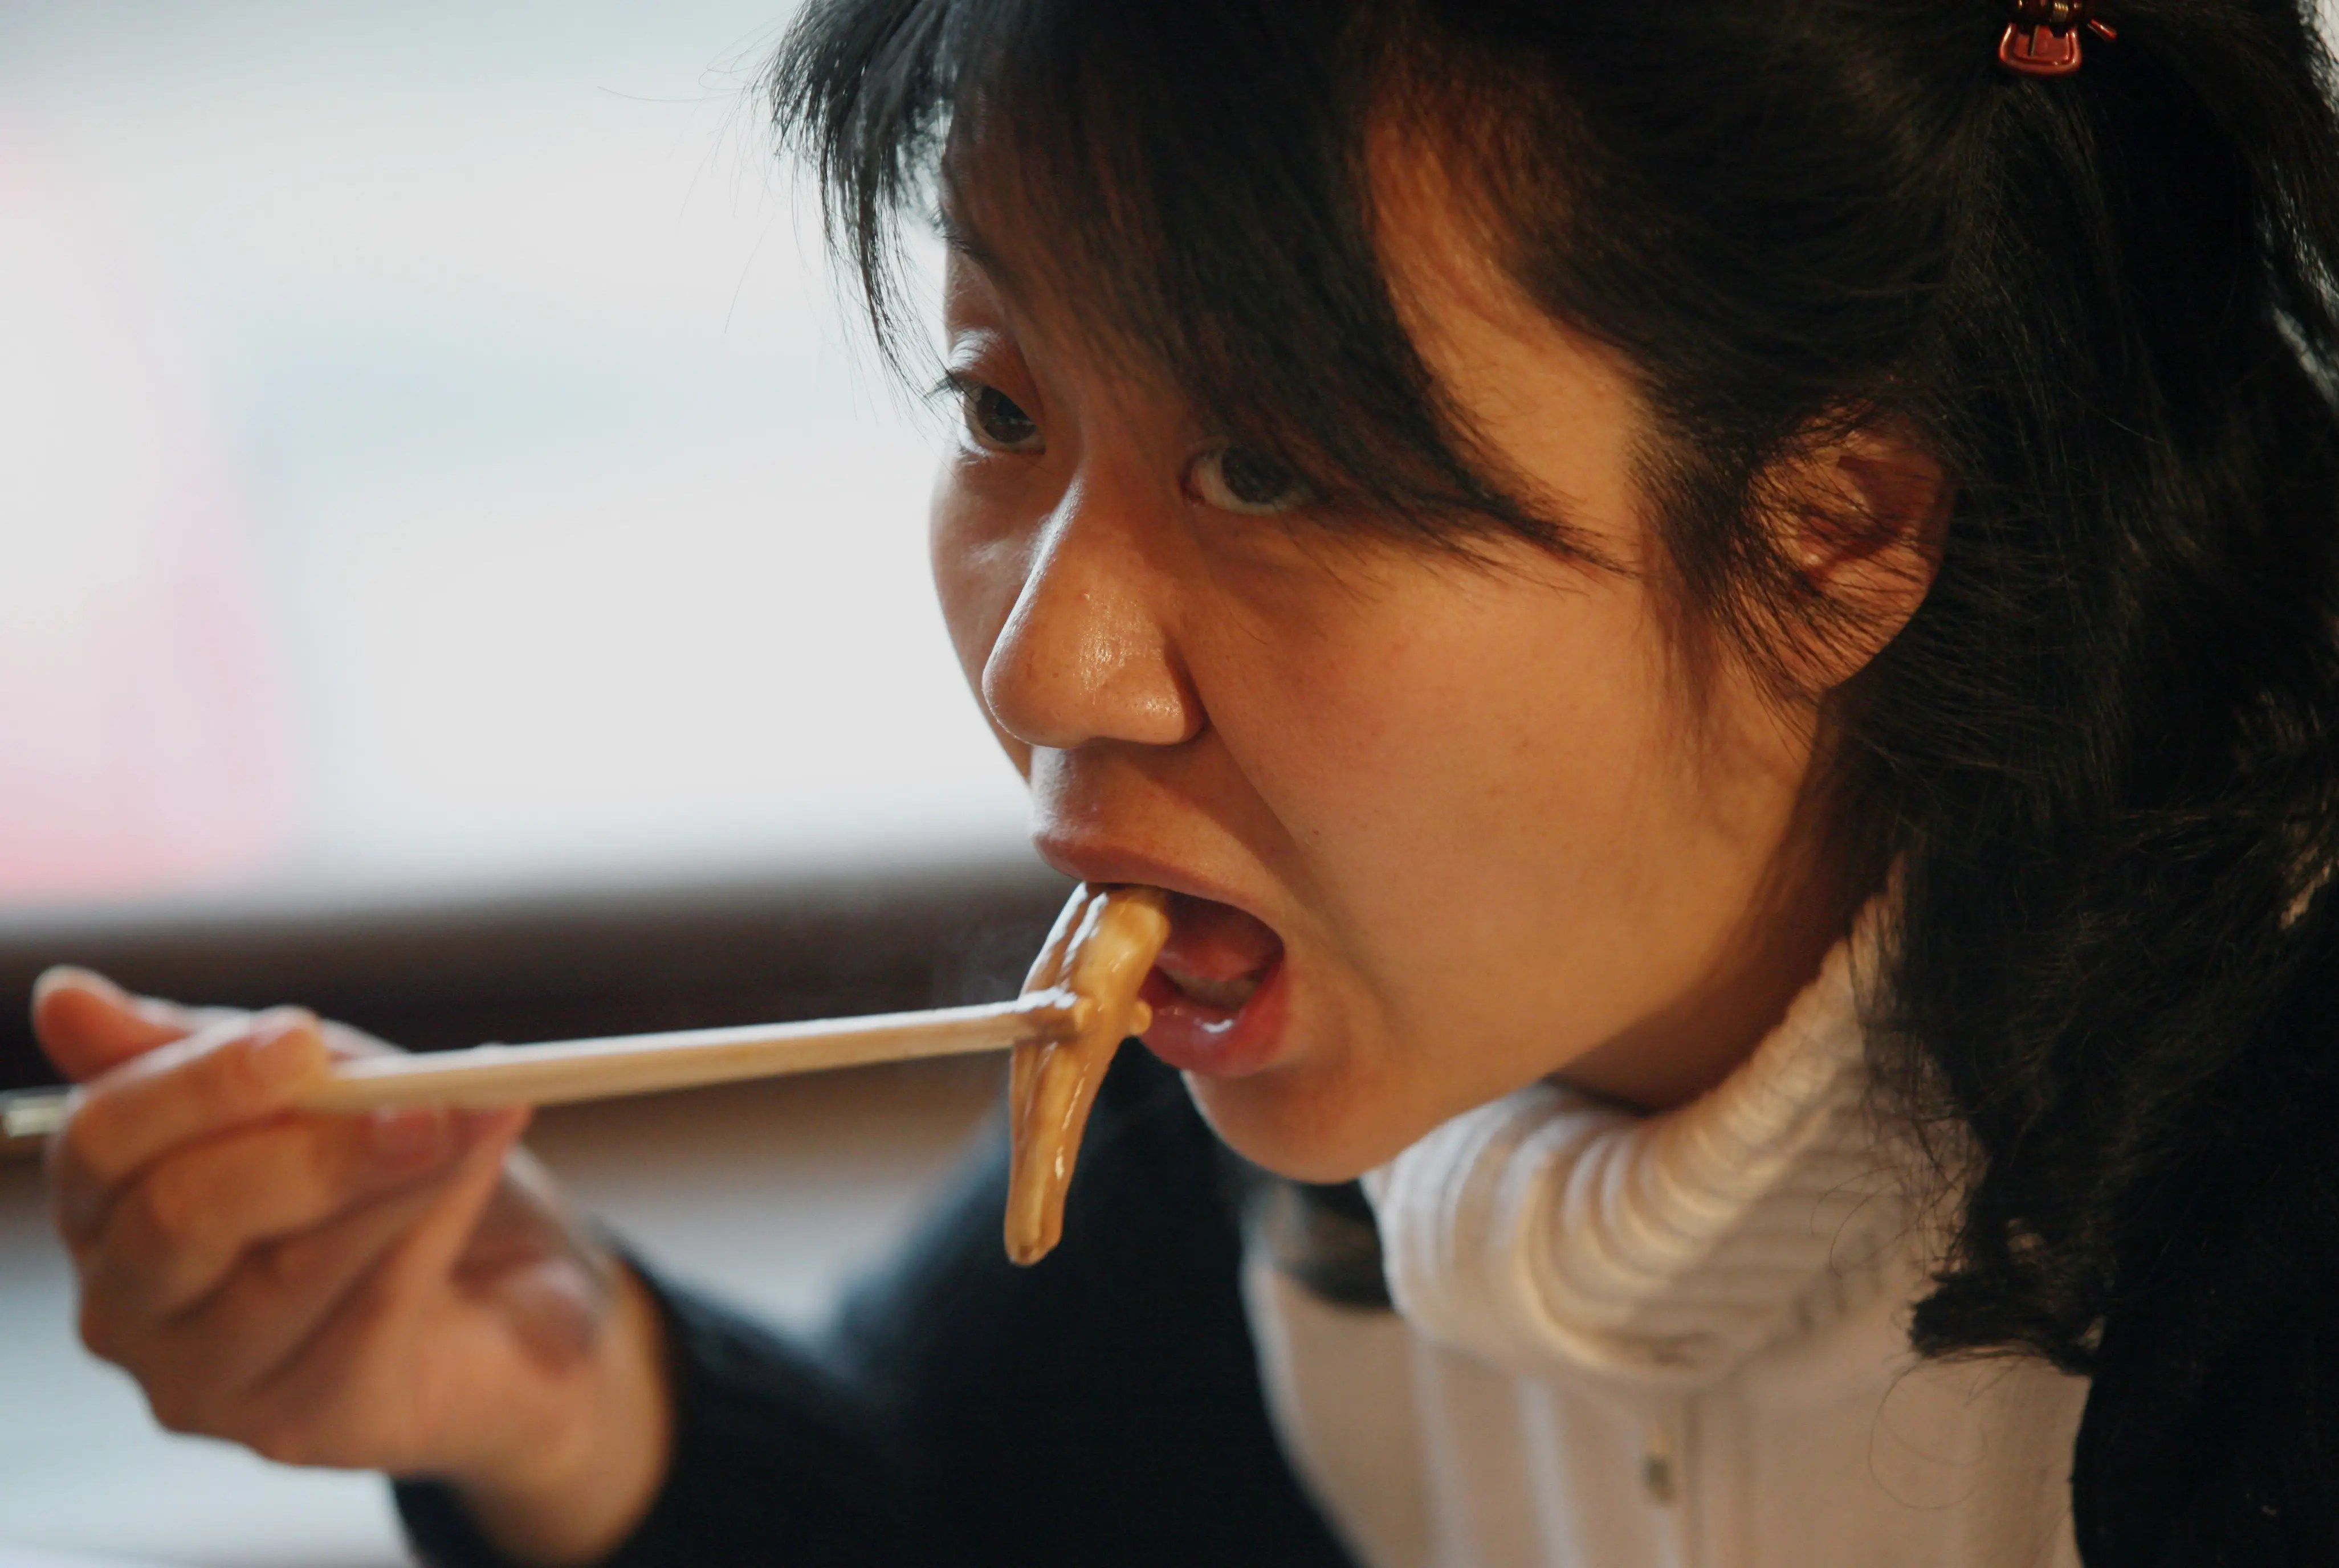 A Chinese woman eats from an ox and dog penis dish at a penis restaurant in Beijing that serves over 30 types of animal penises in traditional hotpot style. In China, many animal penises are thought to have medicinal properties.